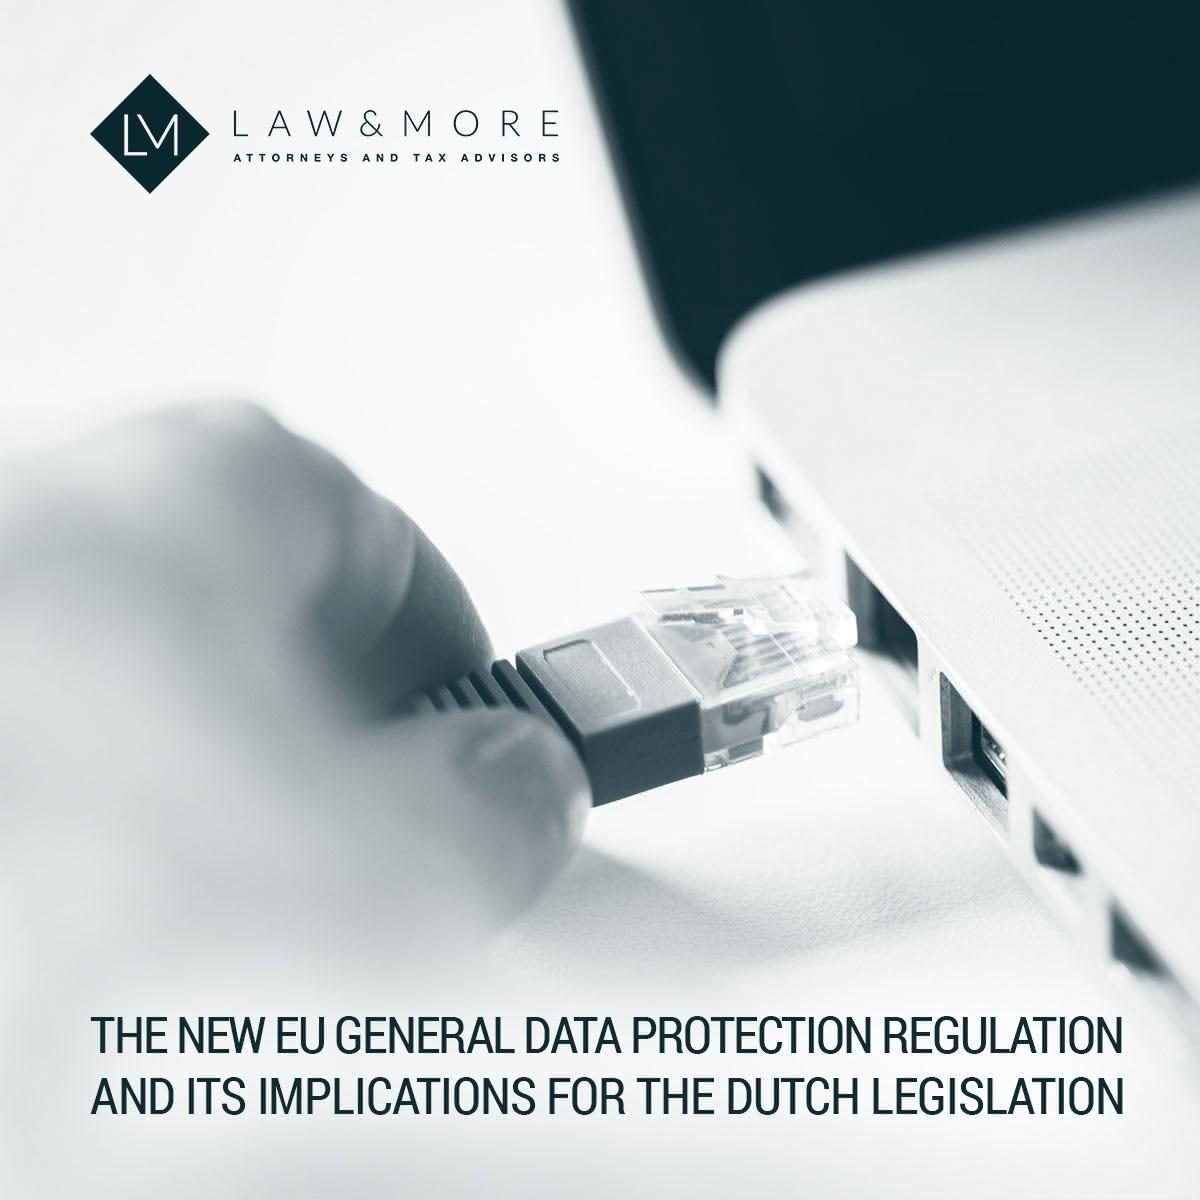 The new EU General Data Protection Regulation and its implications for the Dutch legislation 1x1